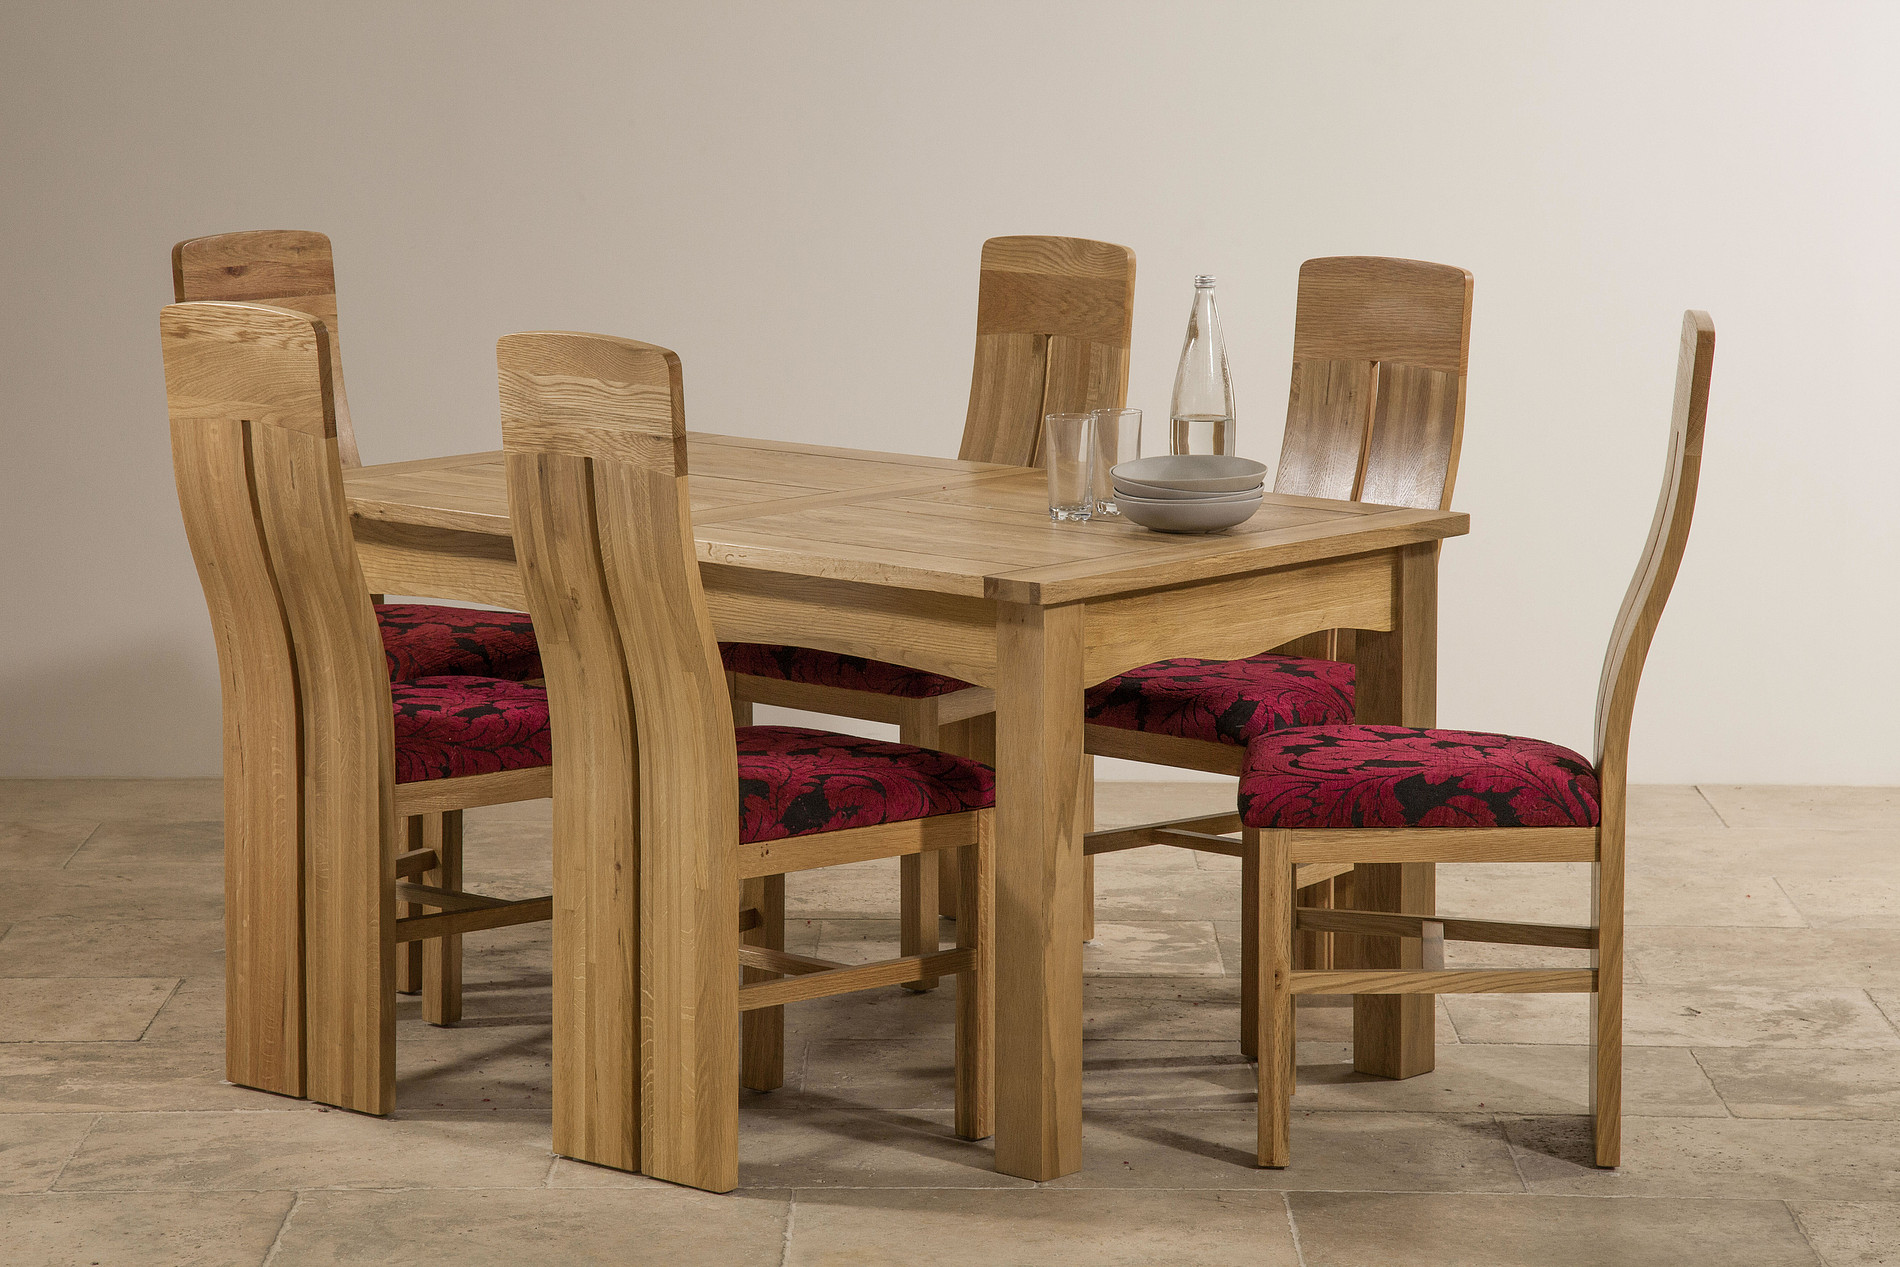 3 foot by 5 foot dining table